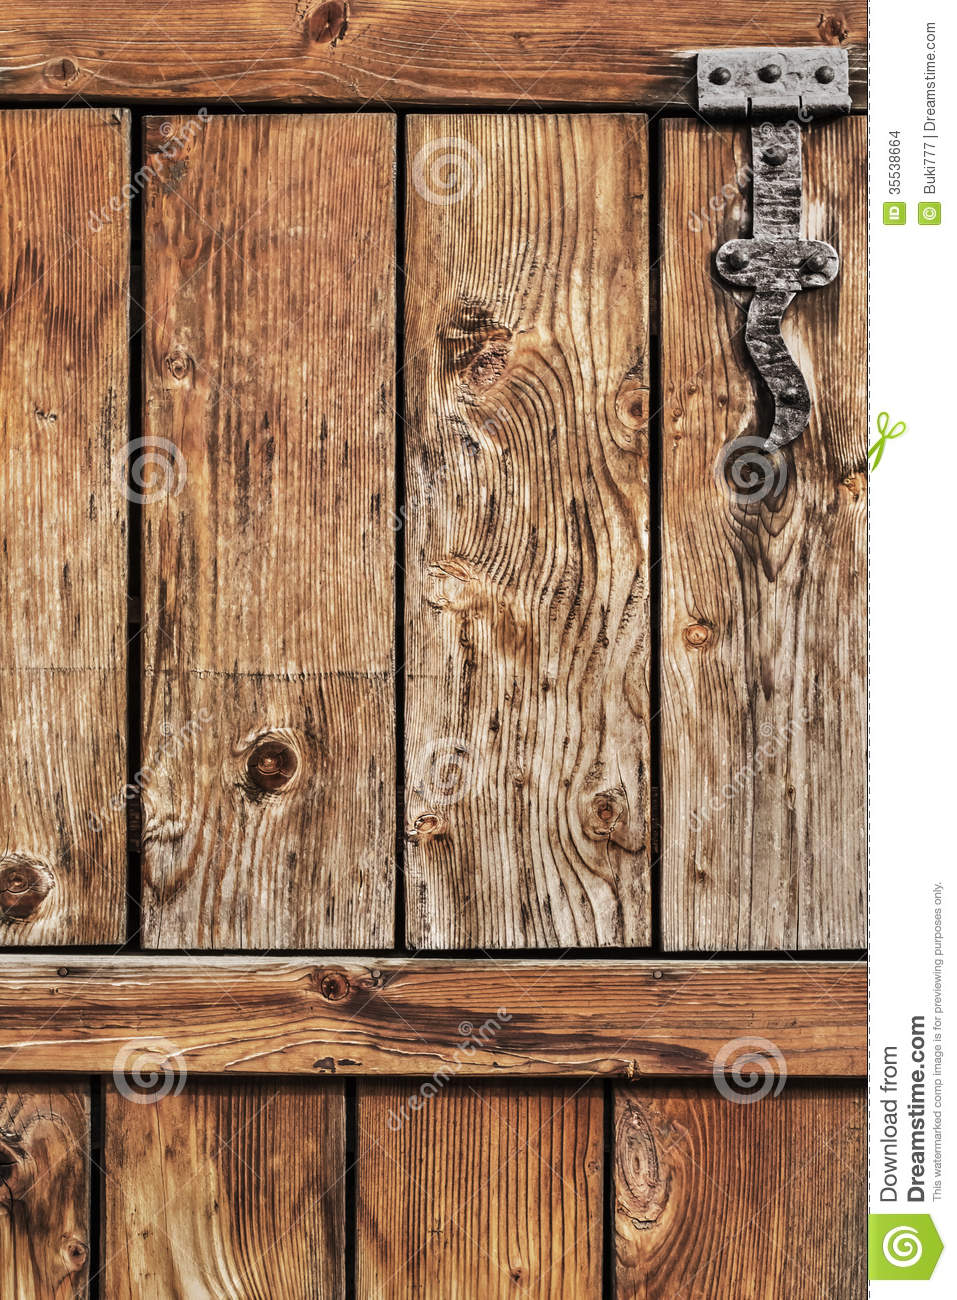 Antique Rustic Pine Wood Barn Door - Detail - Antique Rustic Pine Wood Barn Door - Detail Stock Photo - Image Of